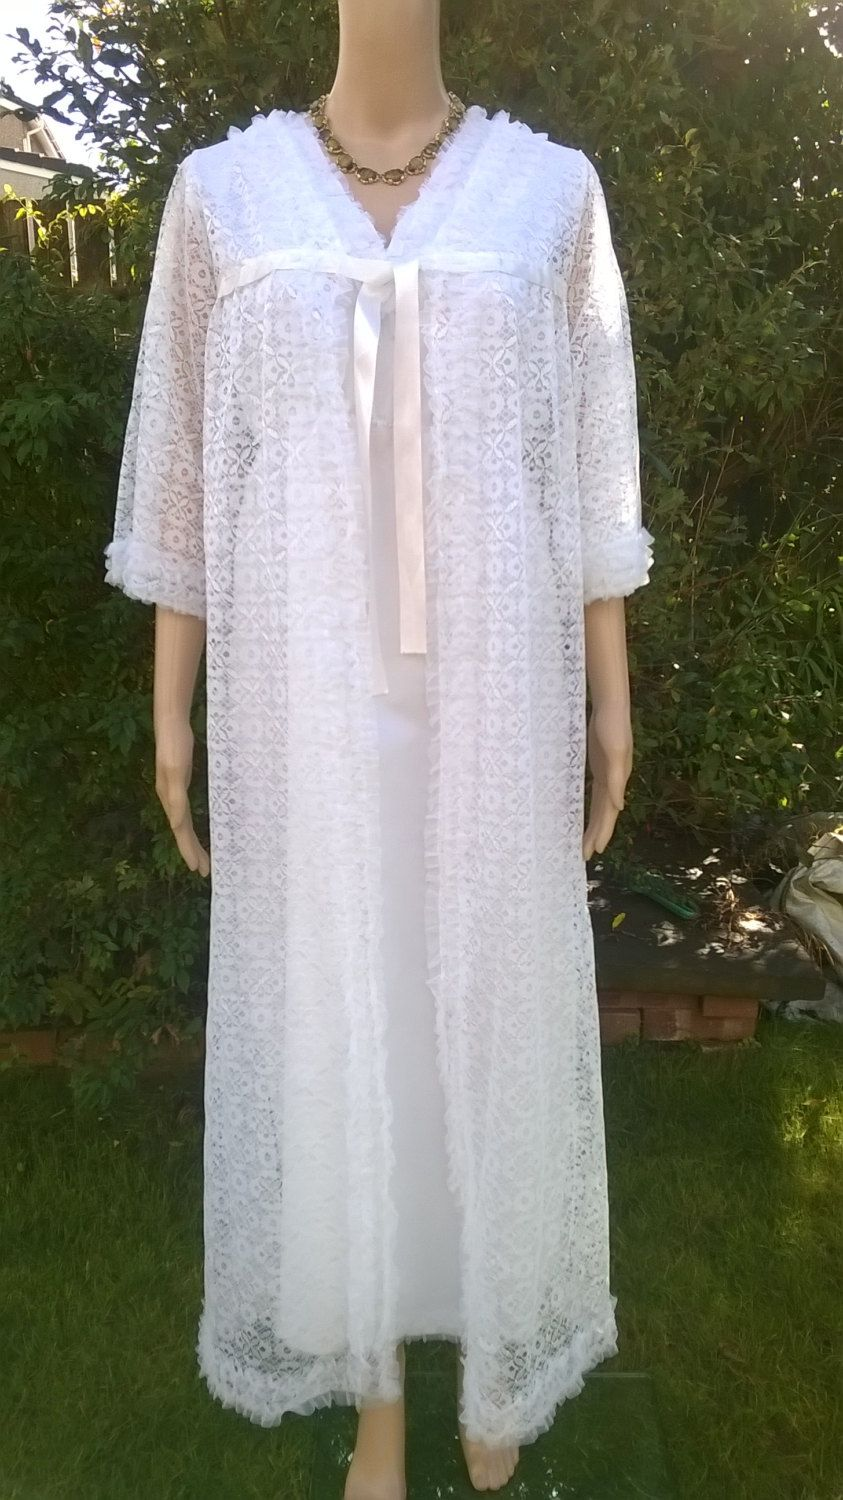 f79fe154777 Vintage Peignoir Set 1970 s Negligee White Nylon Nightdress and Frilly Lace…